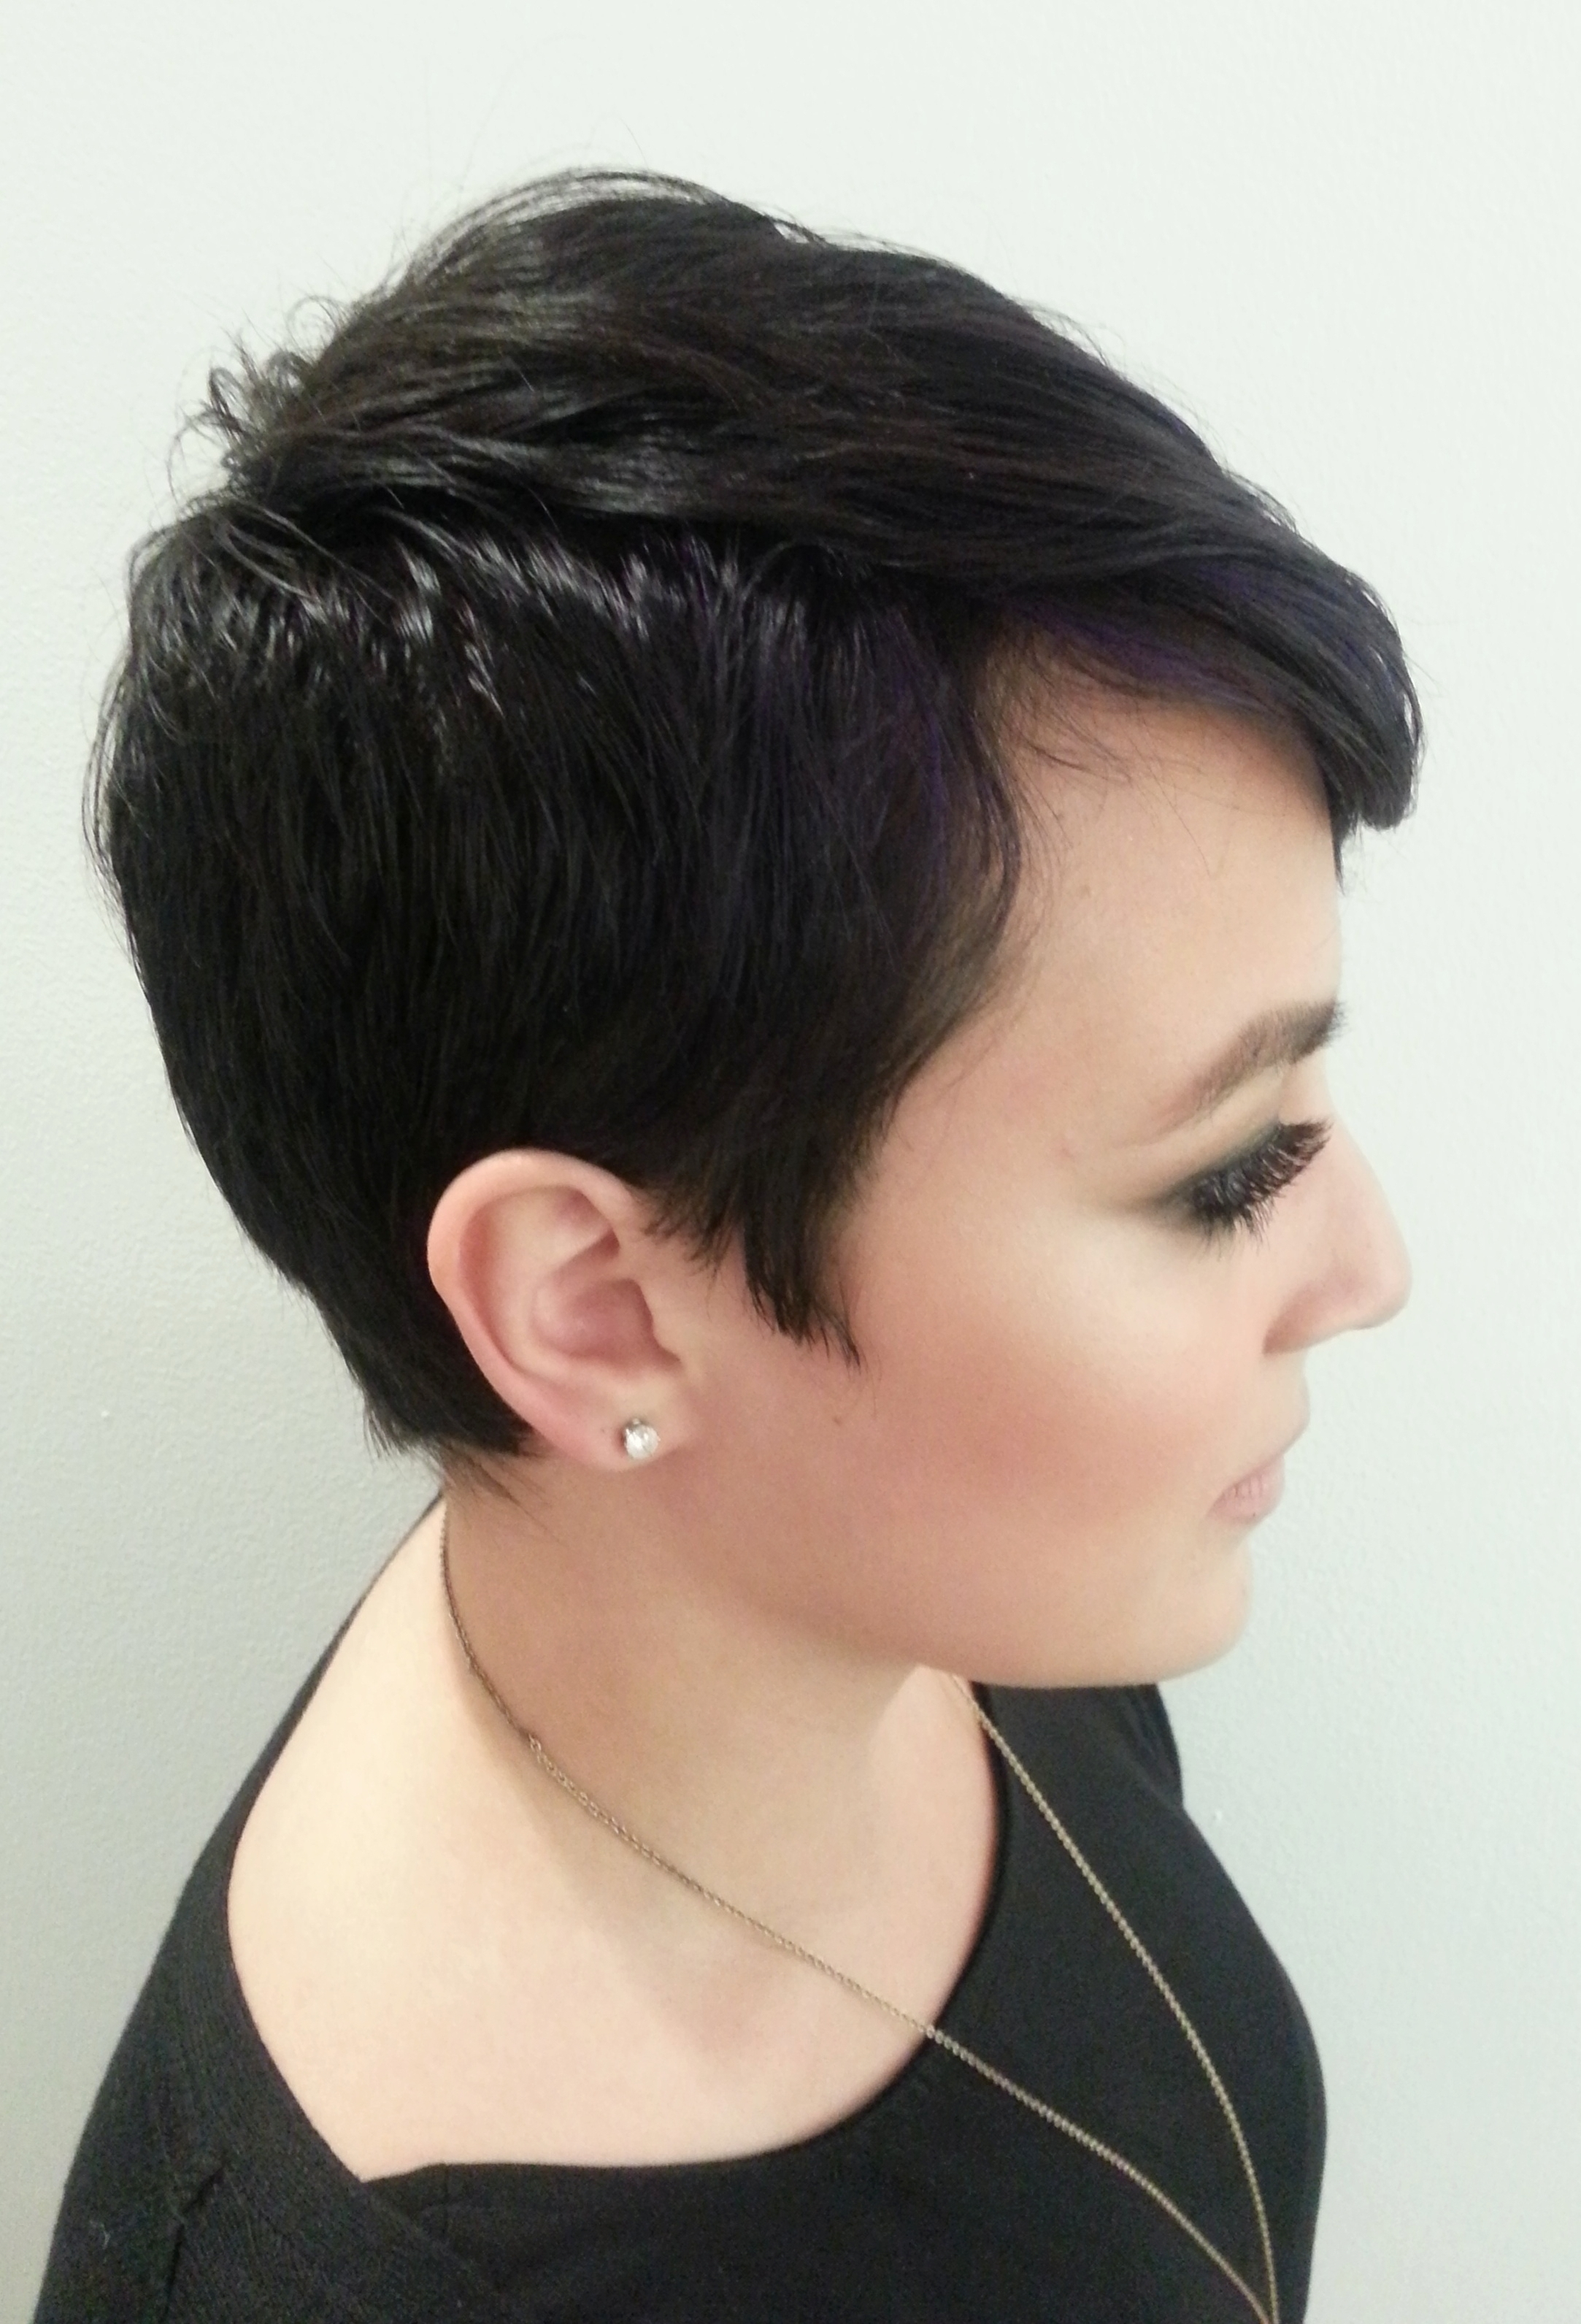 Pixie Haircut For Thick Curly Hair Short Hairstyles Thick Hair Inside Recent Pixie Hairstyles For Thick Coarse Hair (View 7 of 16)